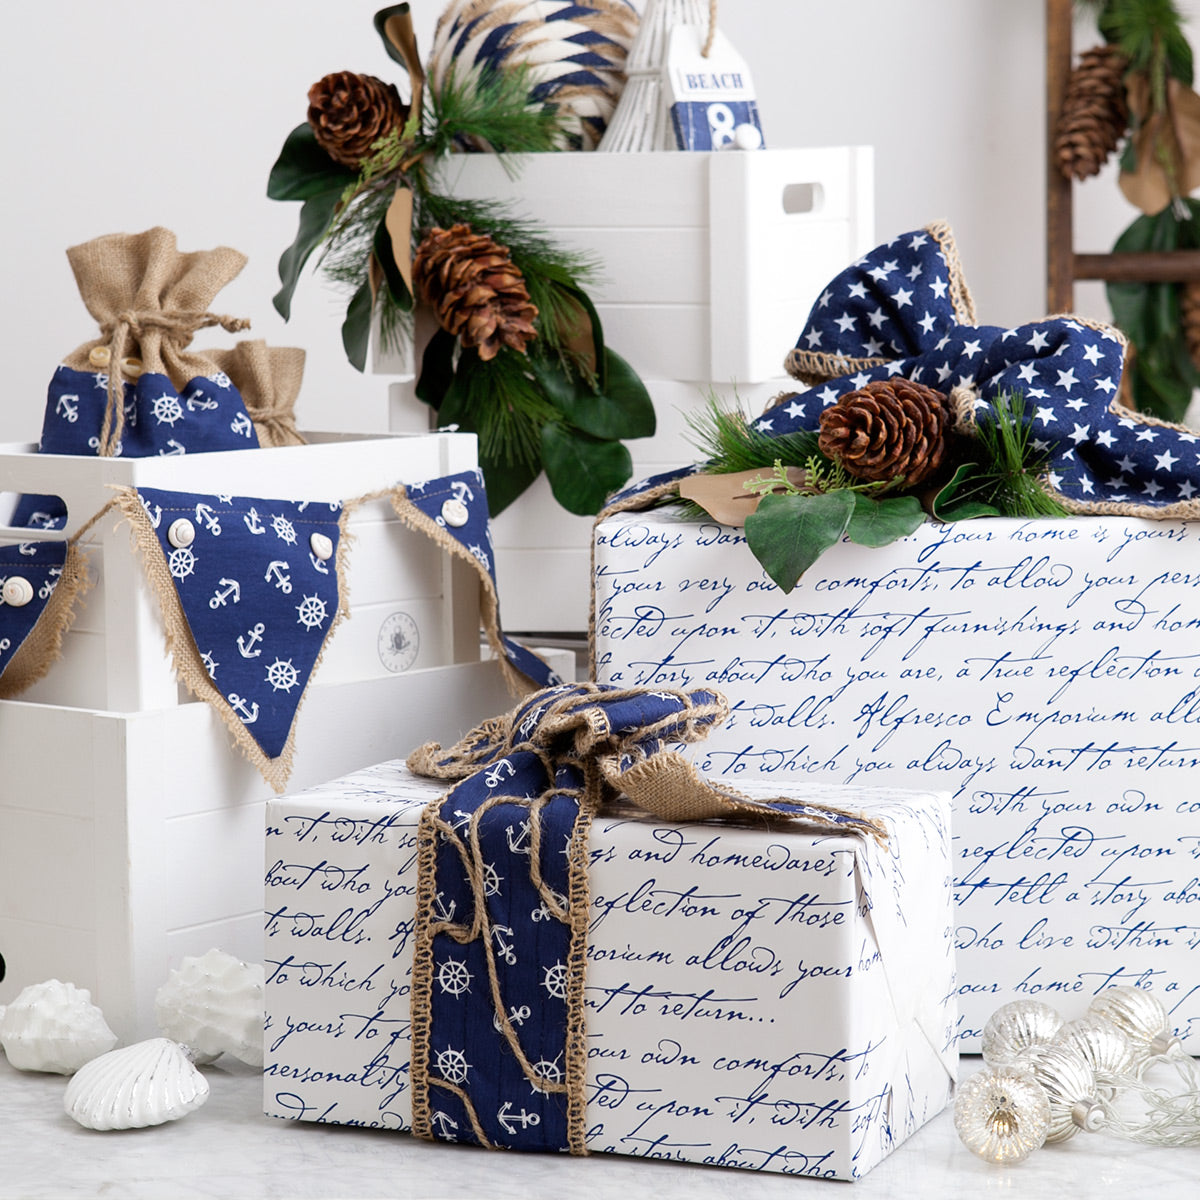 Blue and white wrapped gifts.